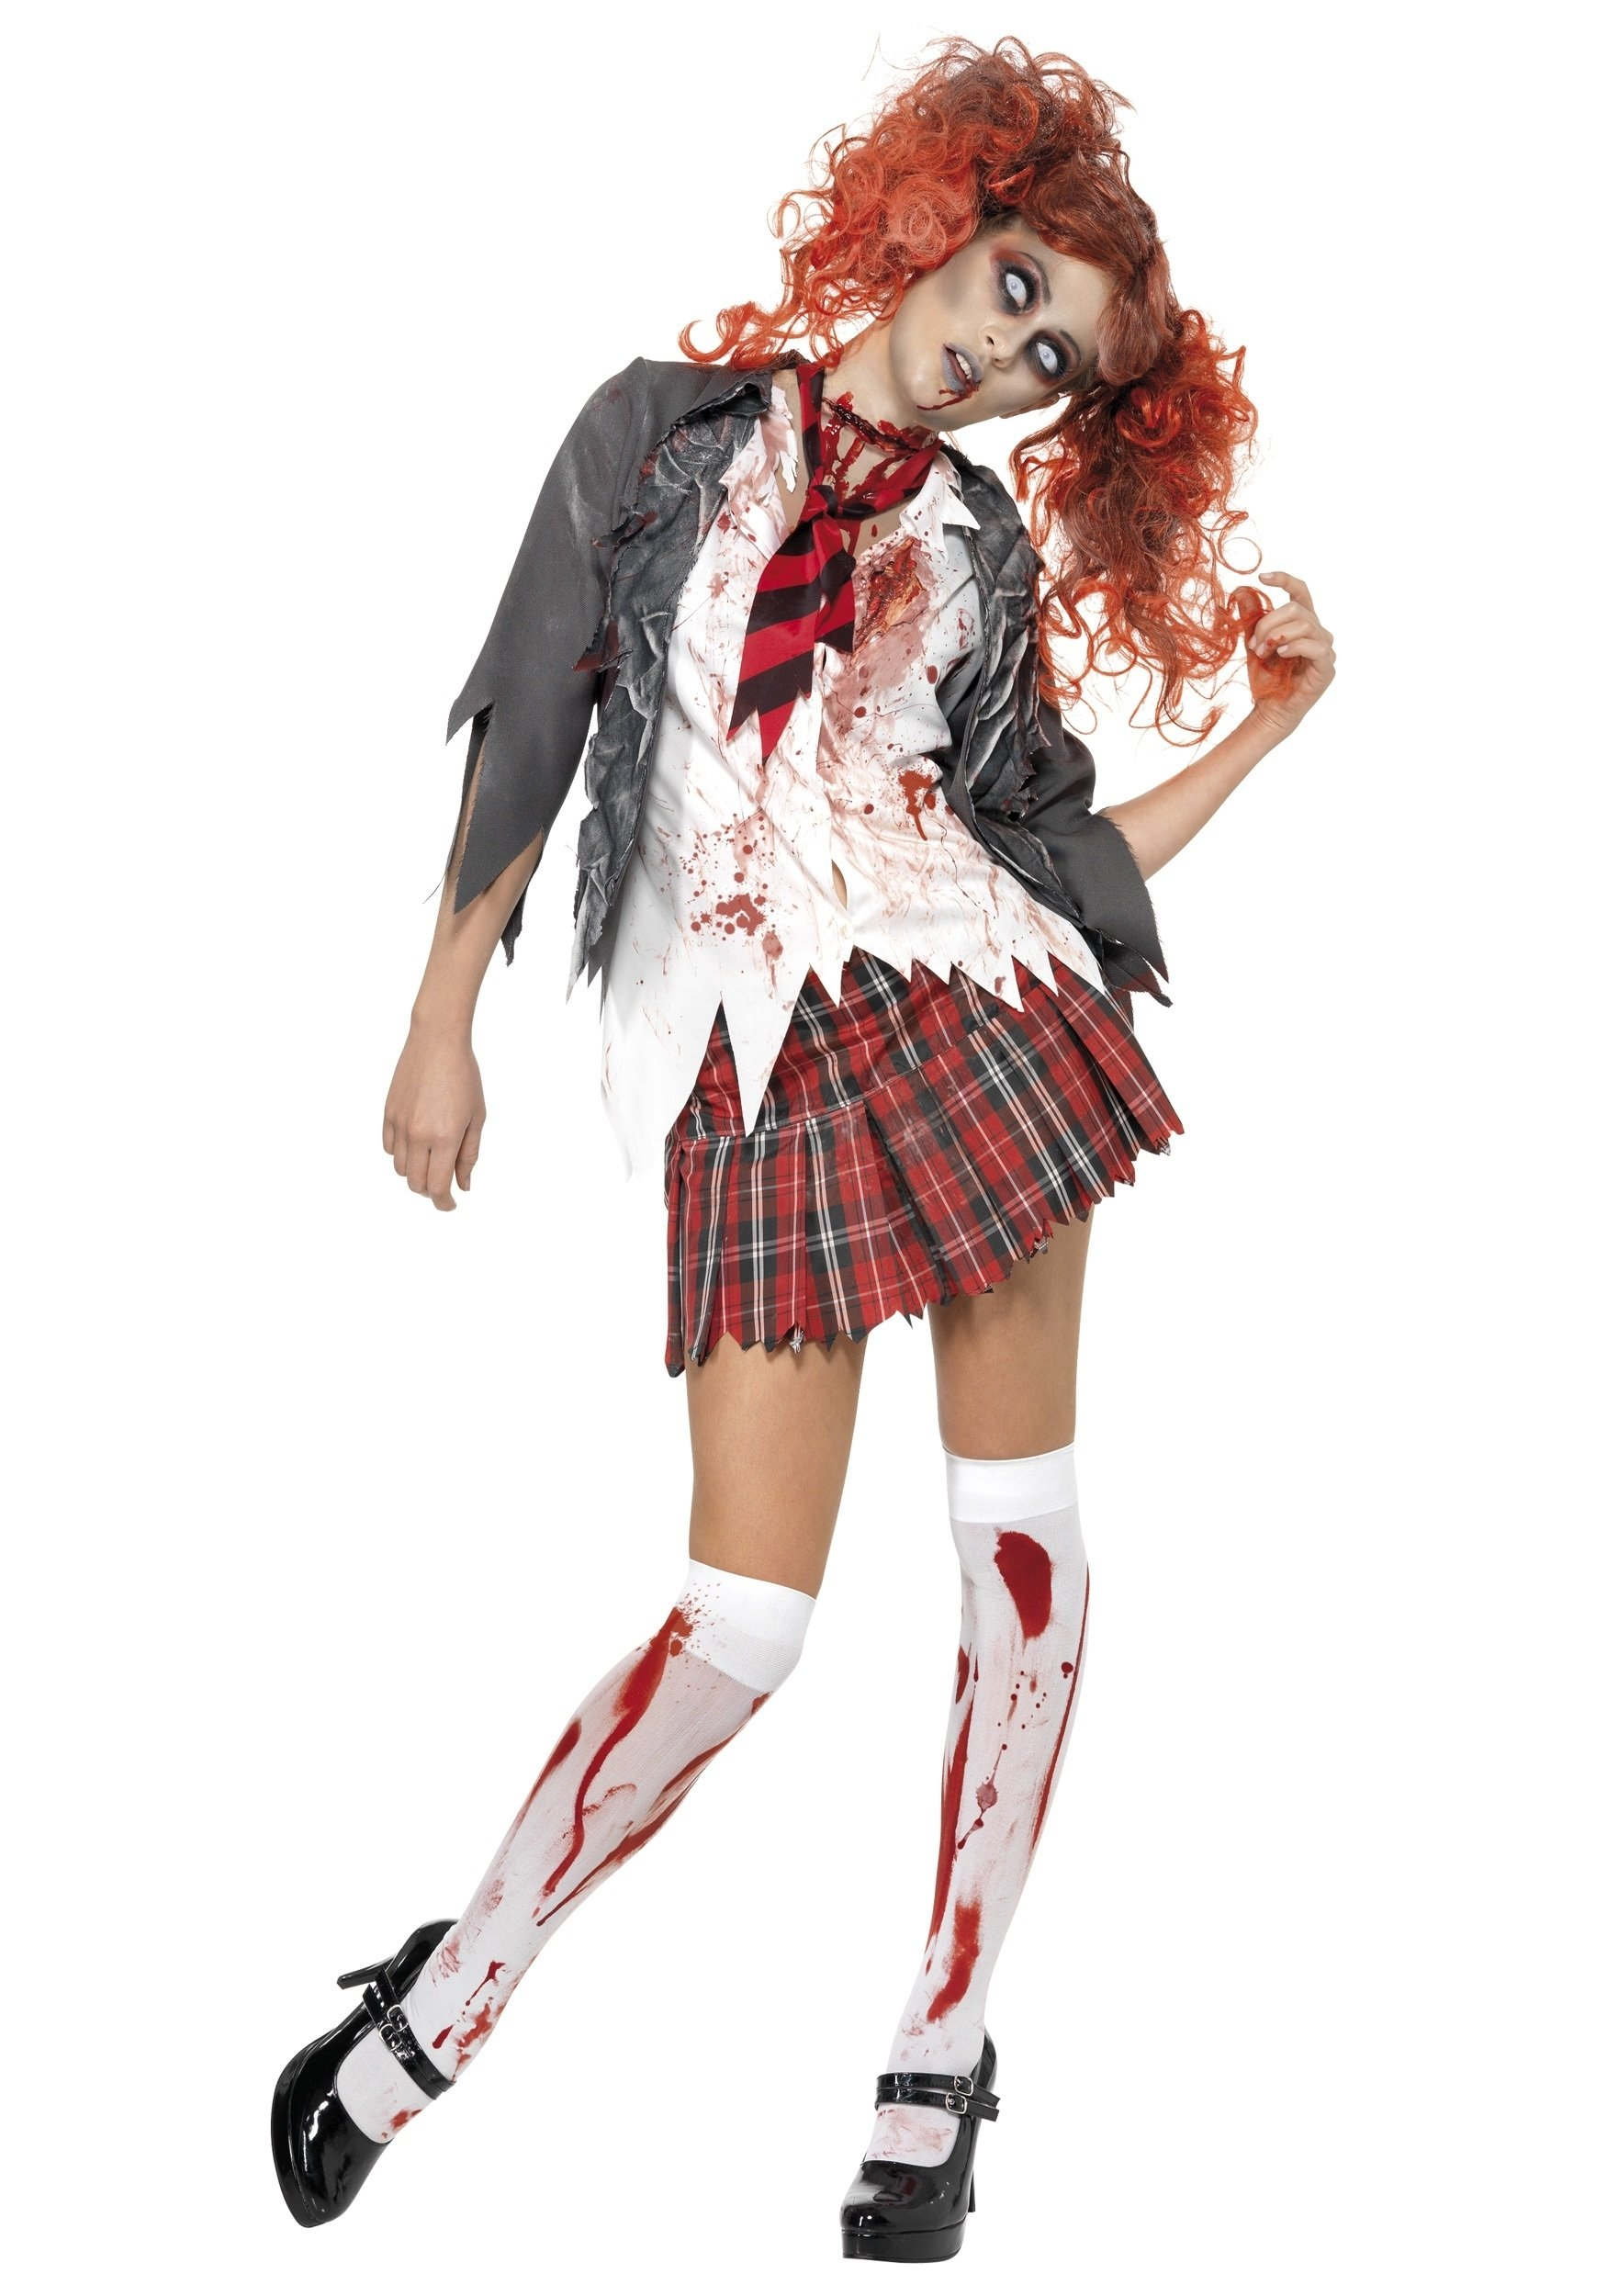 10 Amazing Zombie Costume Ideas For Girls school girl zombie costume 1